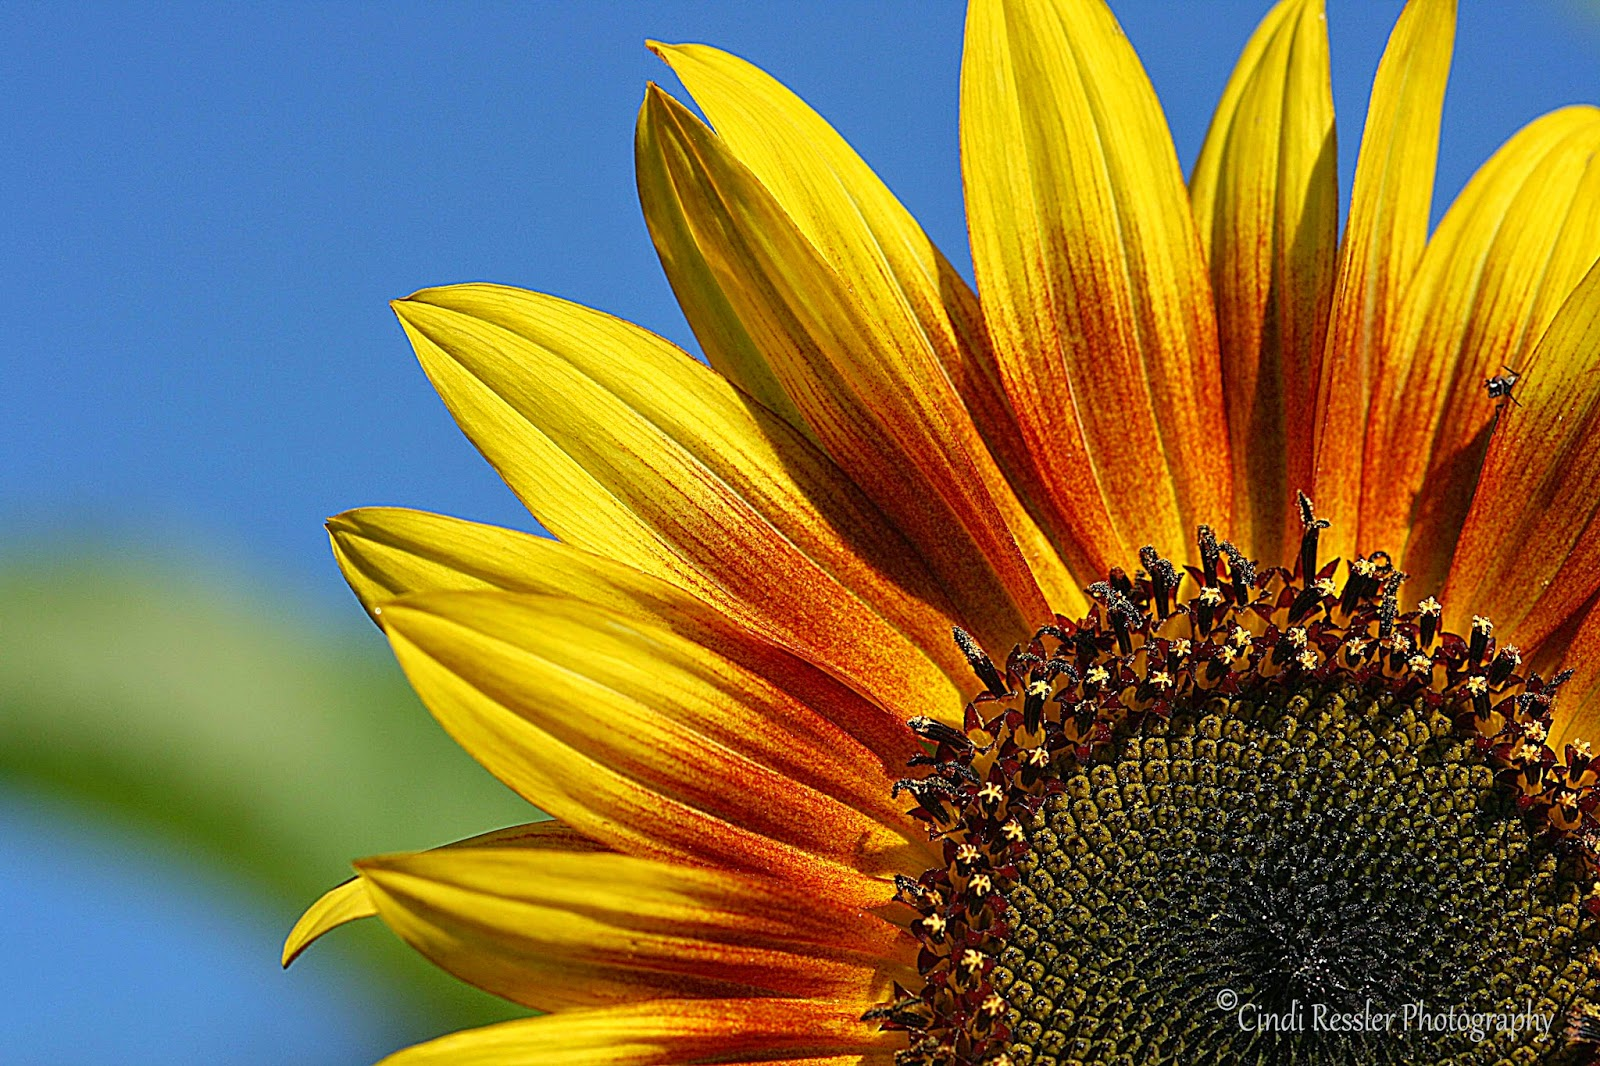 http://fineartamerica.com/featured/2-sunflower-cindi-ressler.html